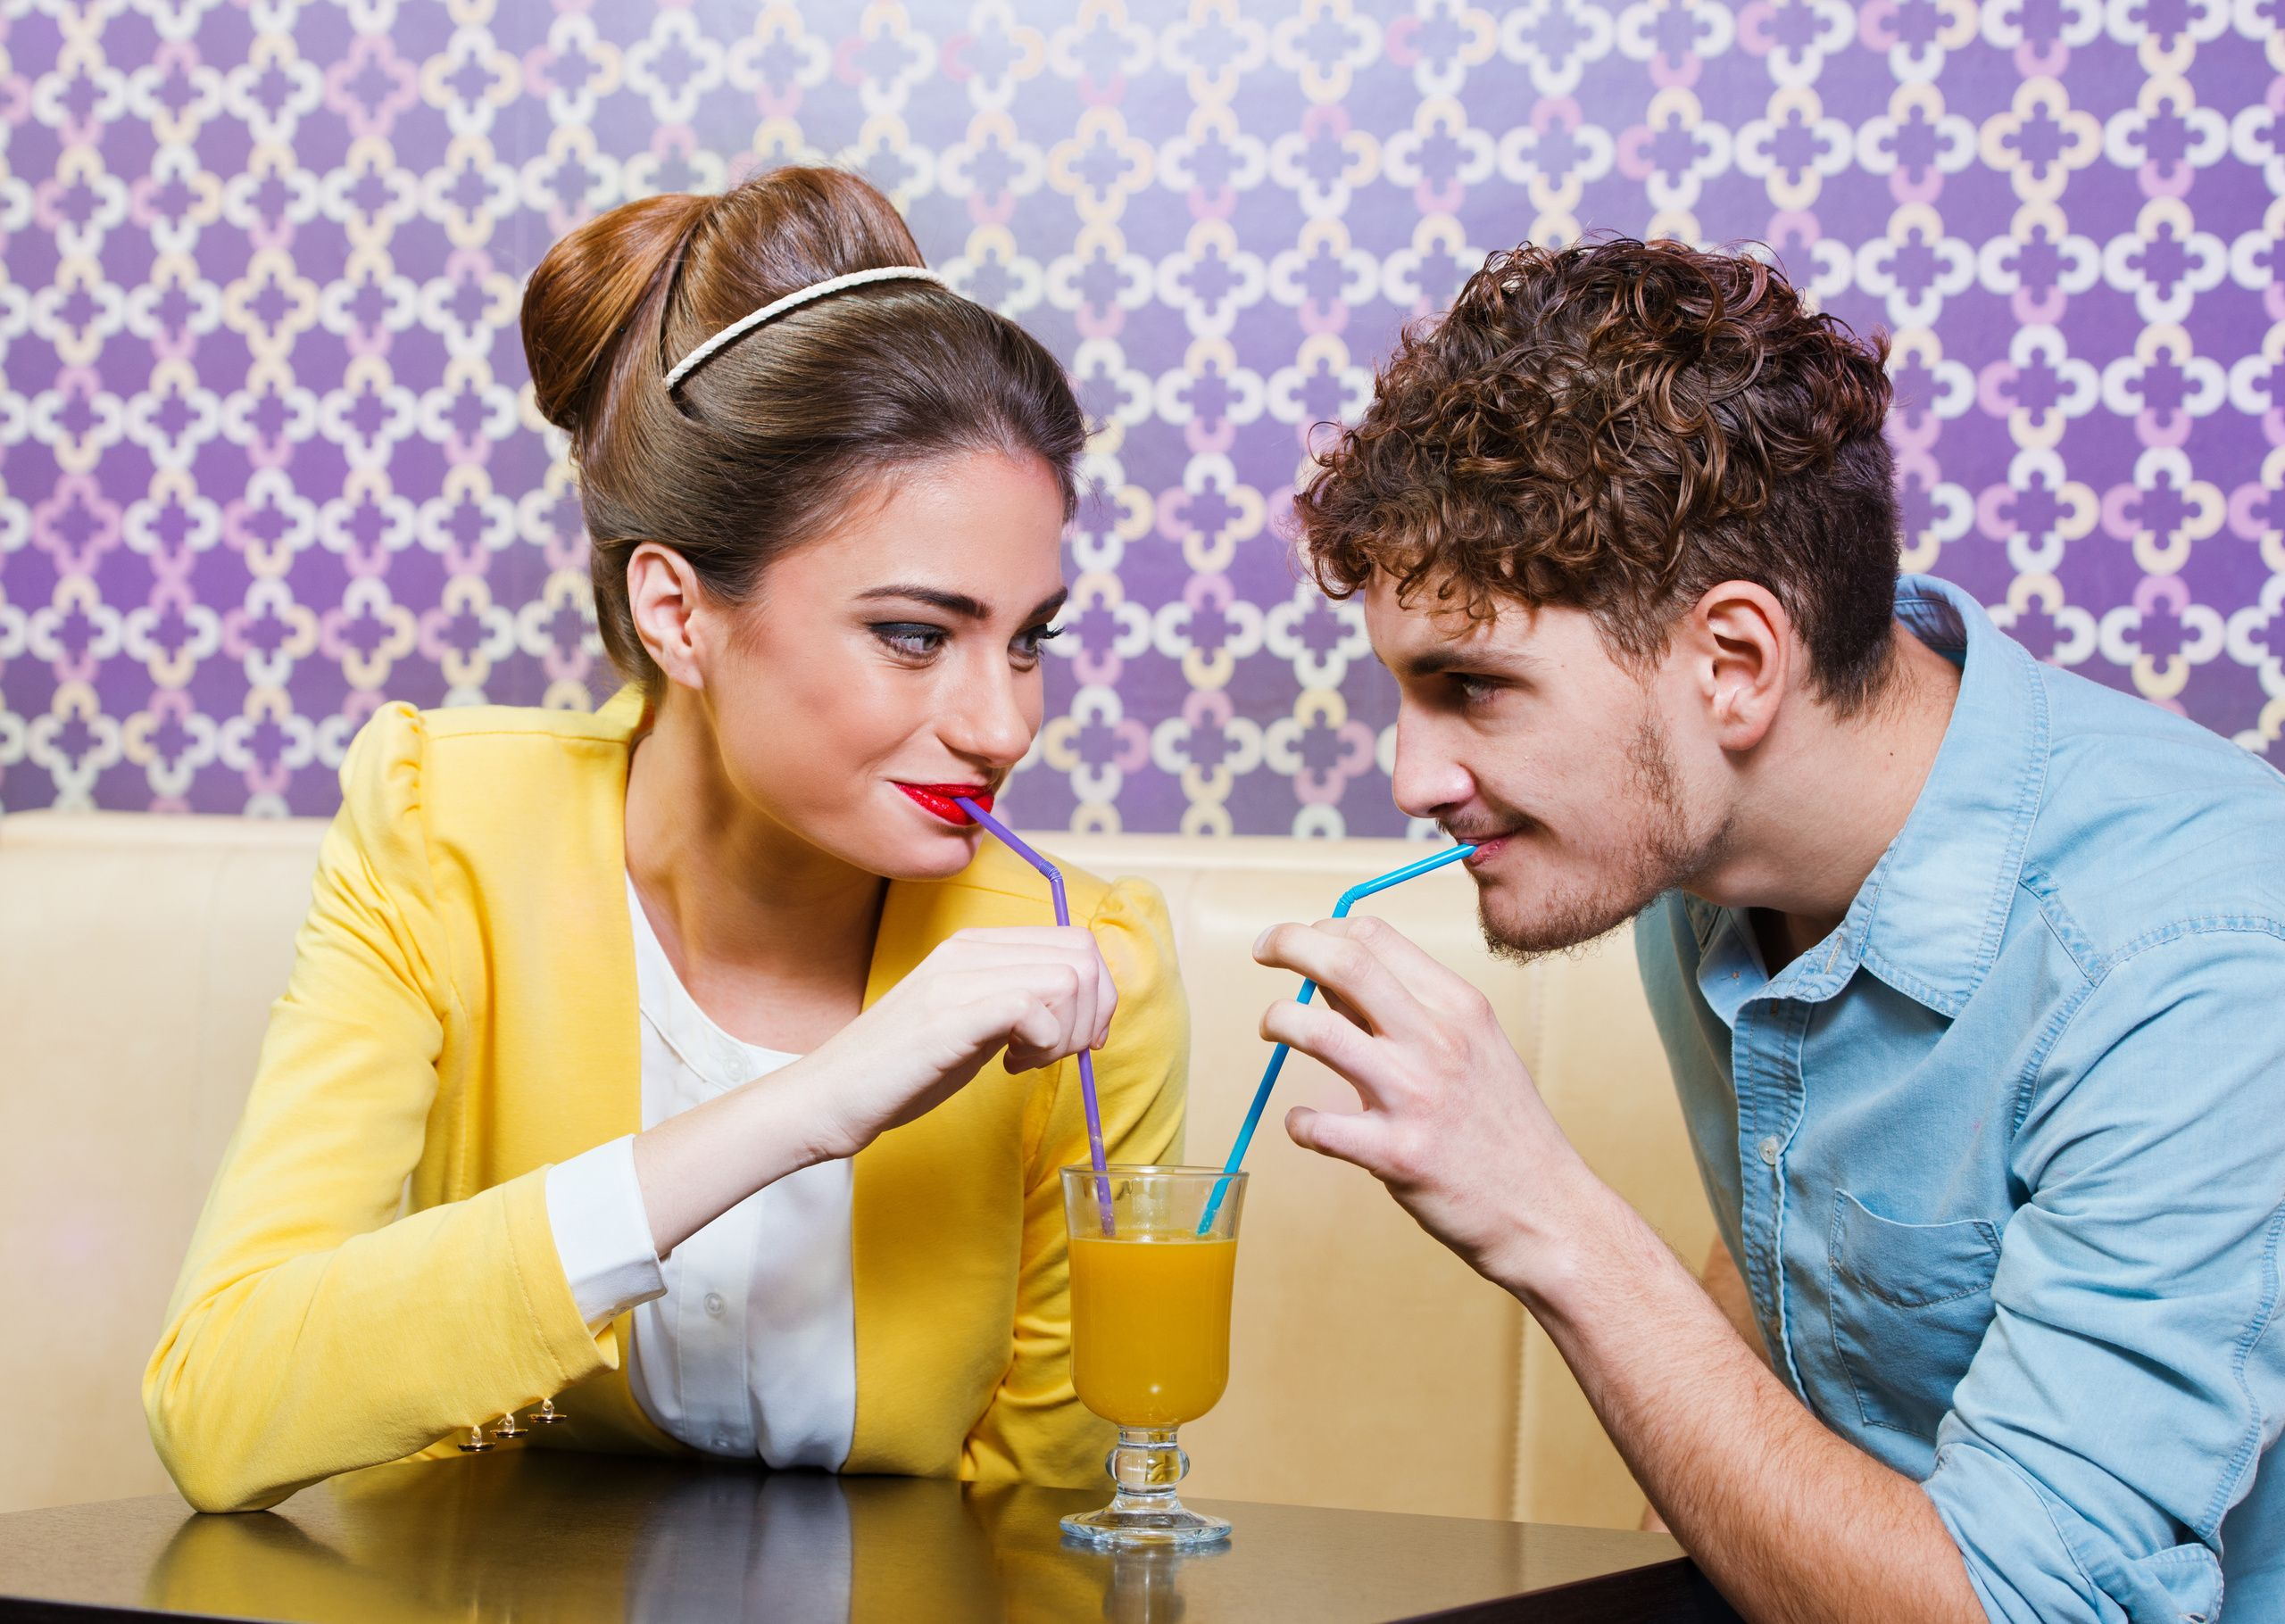 Keep it in your pants! Why You Shouldn't Sleep with Your Co-worker #velvetjobs